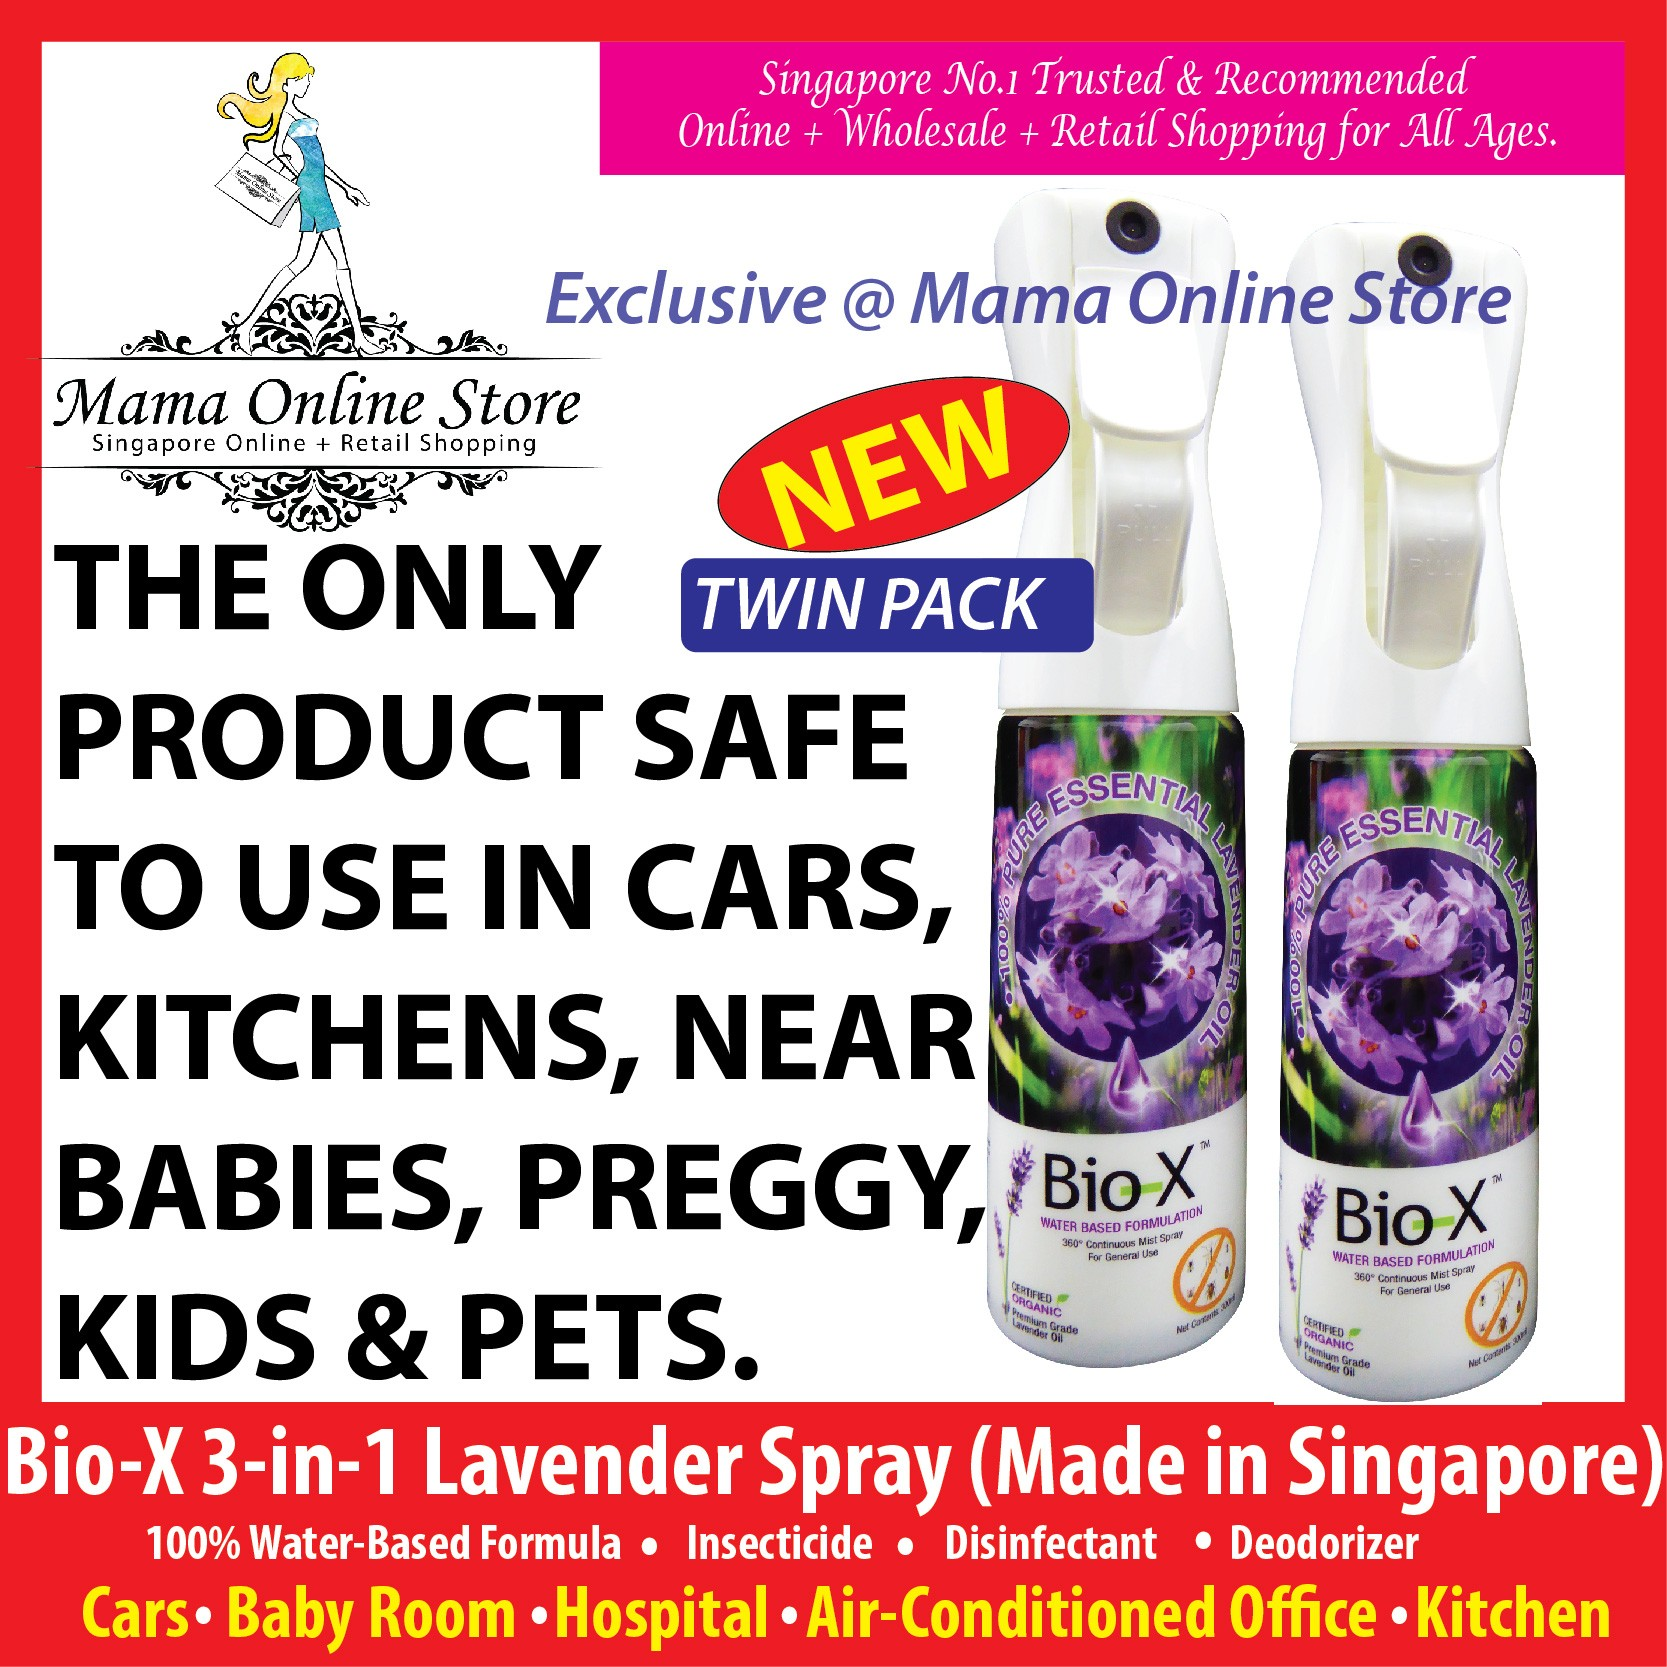 [Bundle of 2] Bio-X 3-in-1 Lavender Spray - Insecticide, Disinfectant, Deodorizer [NON-TOXIC]